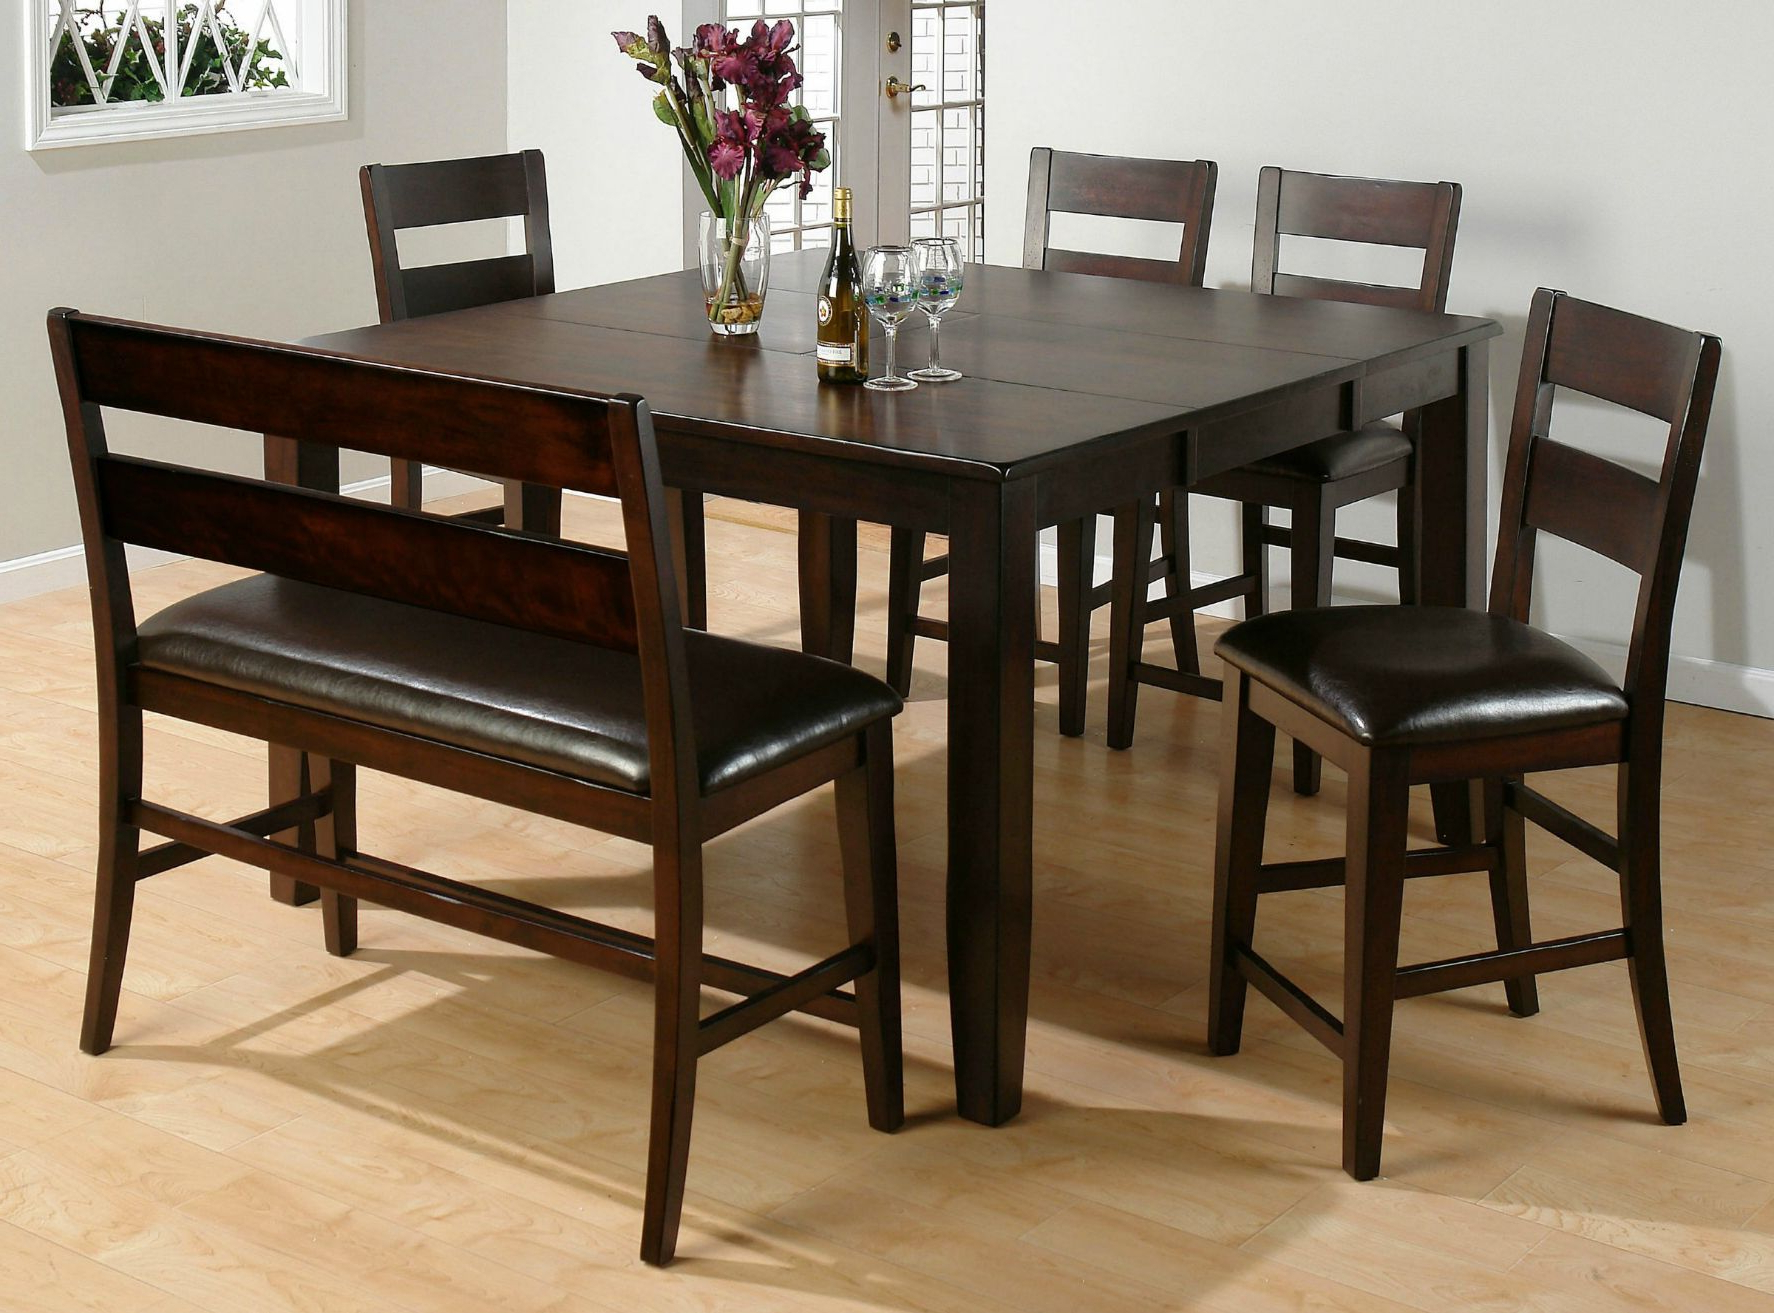 Transitional 4 Seating Square Casual Dining Tables With Regard To 2019 26 Dining Room Sets (Big And Small) With Bench Seating ( (View 22 of 25)